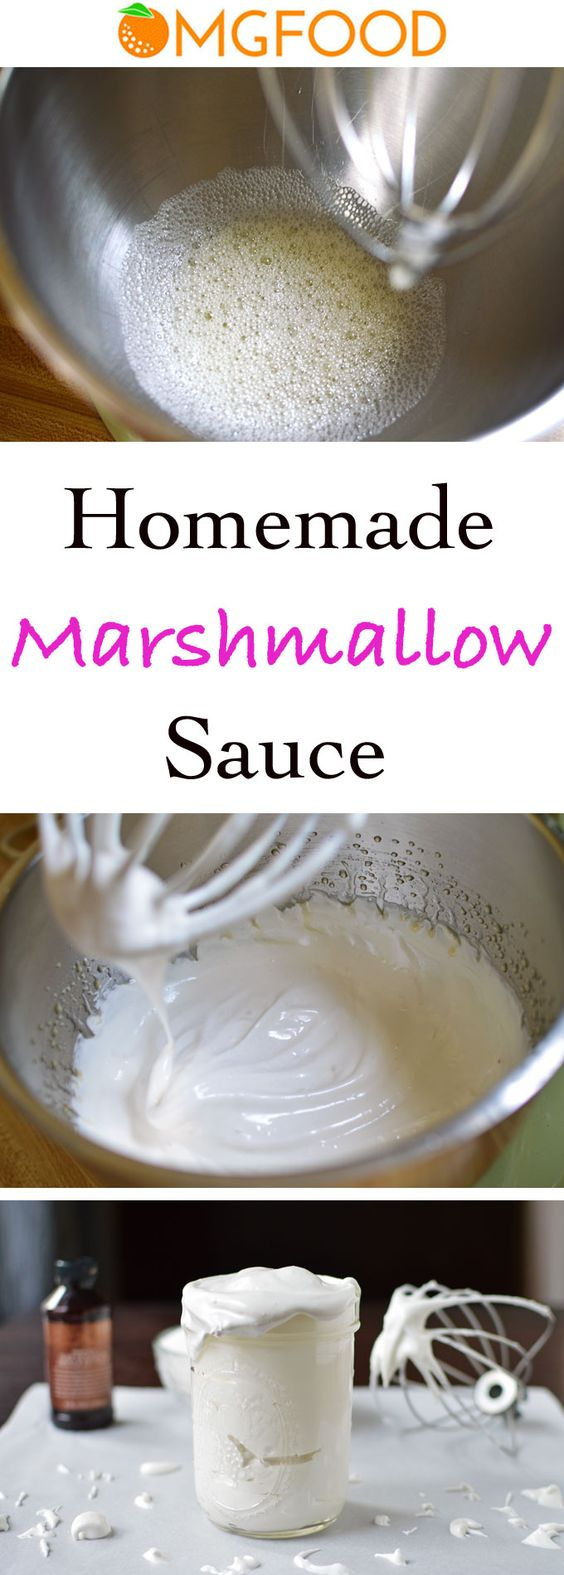 just a few common kitchen ingredients, this homemade marshmallow sauce ...